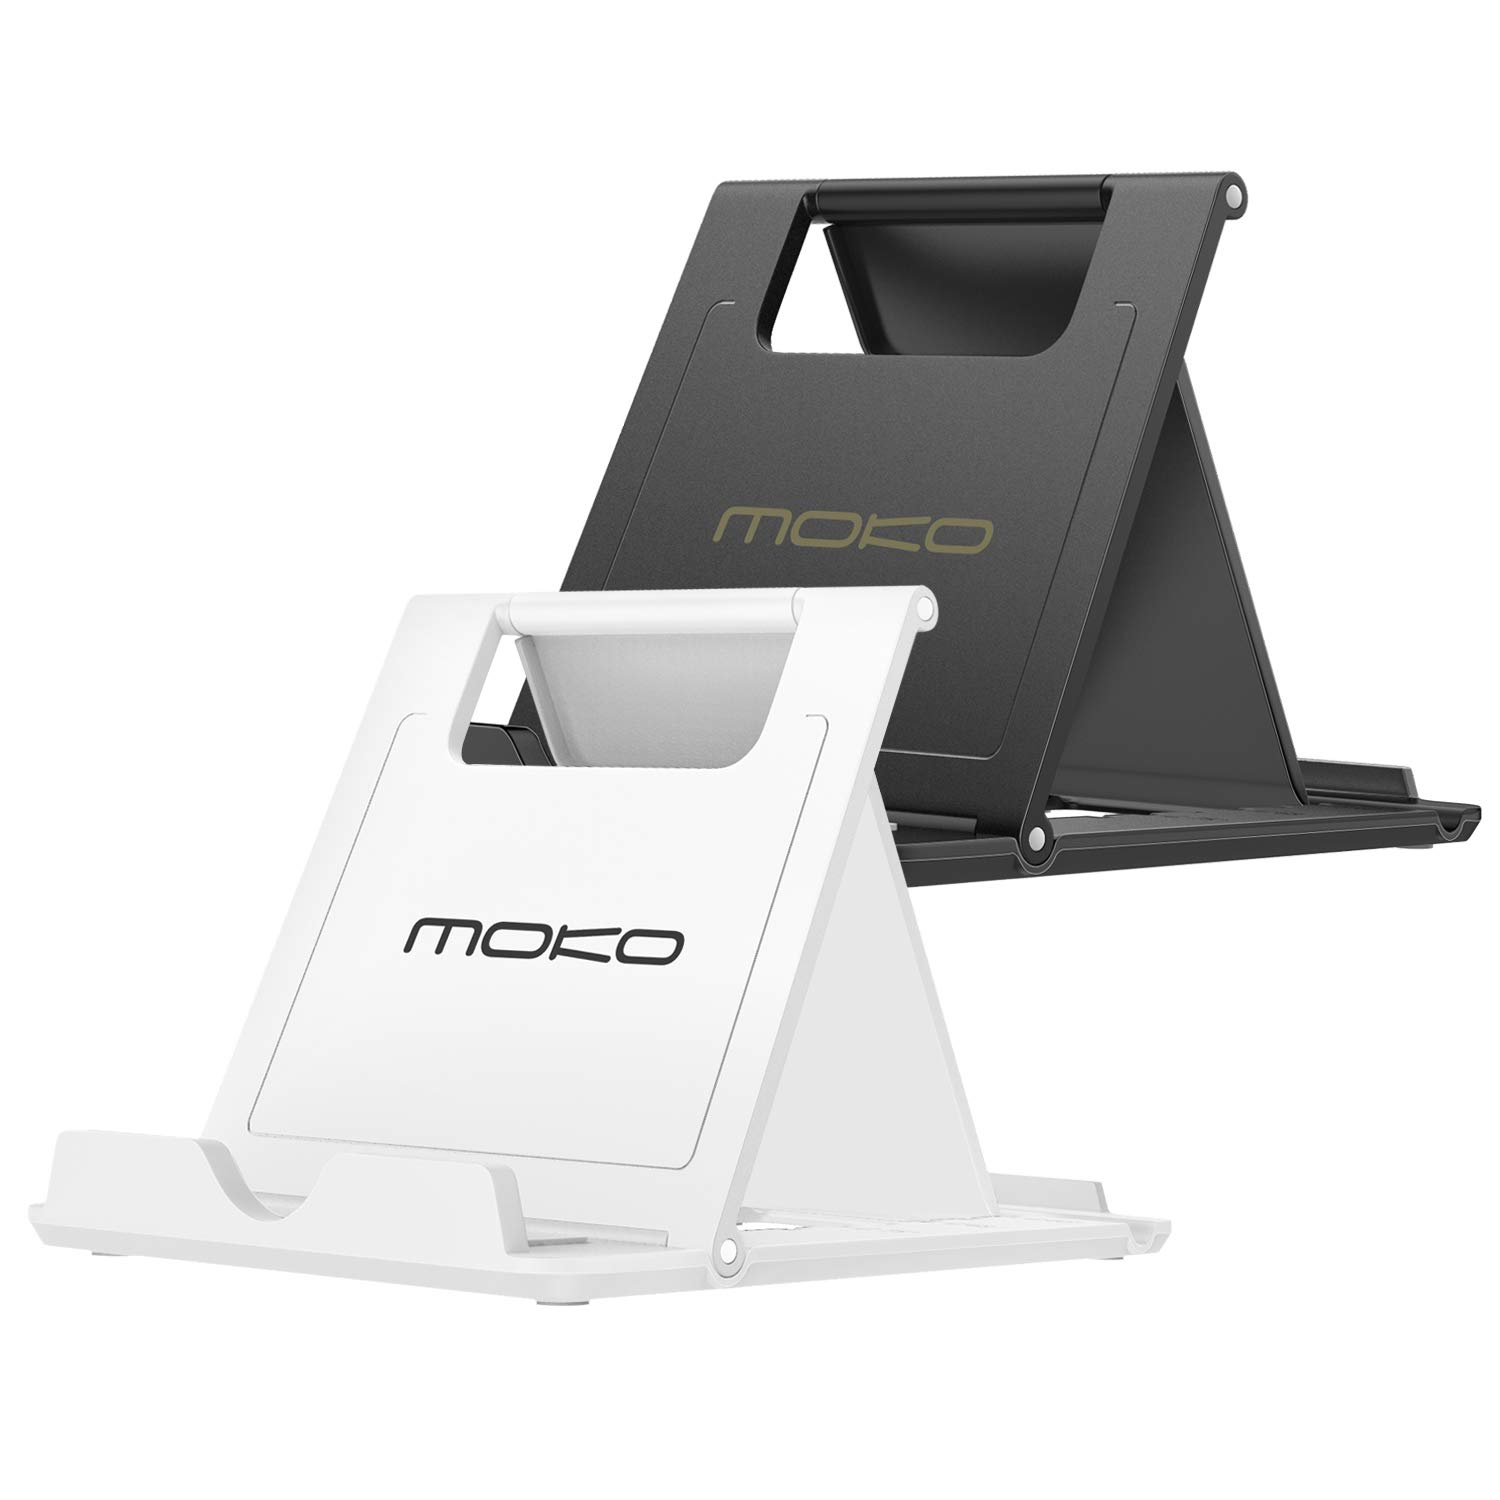 """MoKo [2 Pack] Phone/Tablet Stand, Foldable Holder Fit with iPhone 11 Pro Max/11 Pro/11, iPhone Xs/Xs Max/Xr/X, iPhone SE 2020, iPad Pro 11 2020/10.2/Air 3/Mini 5, Galaxy S20 6.2"""", White + Black"""